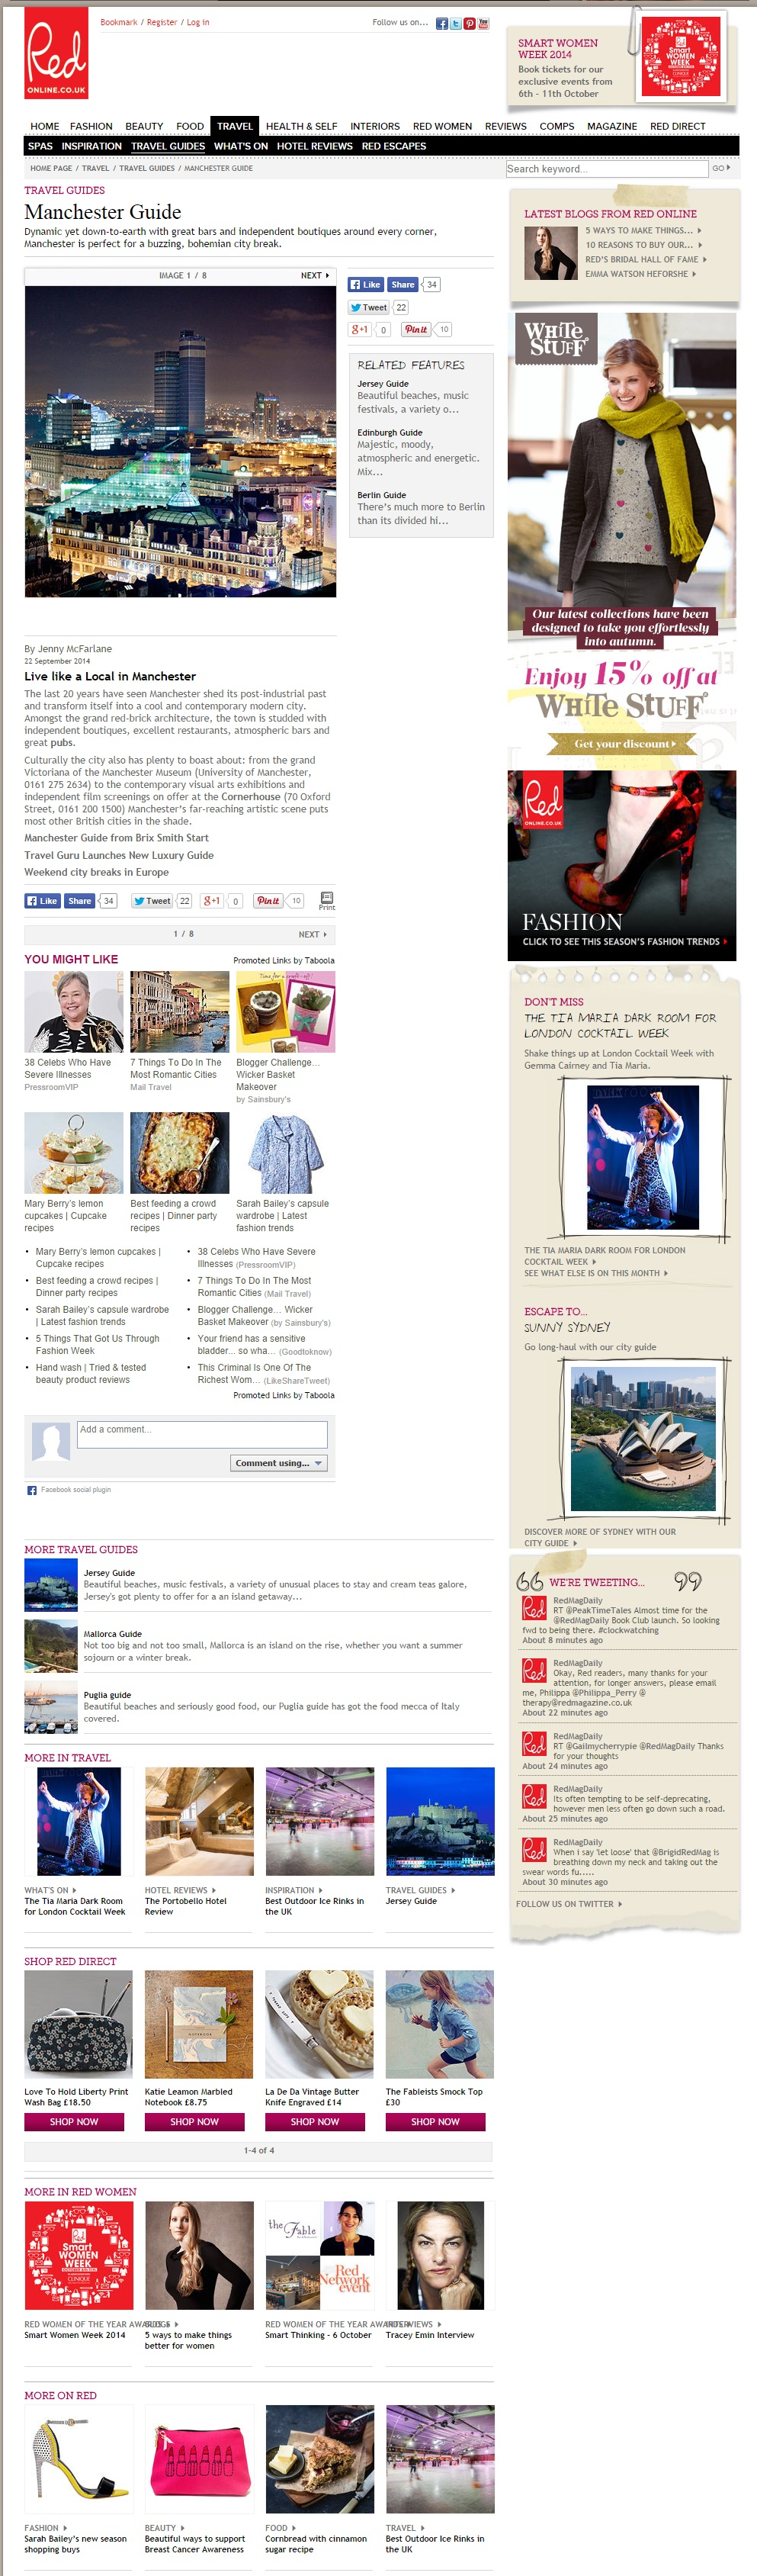 screencapture-www-redonline-co-uk-travel-travel-guides-manchester-guide